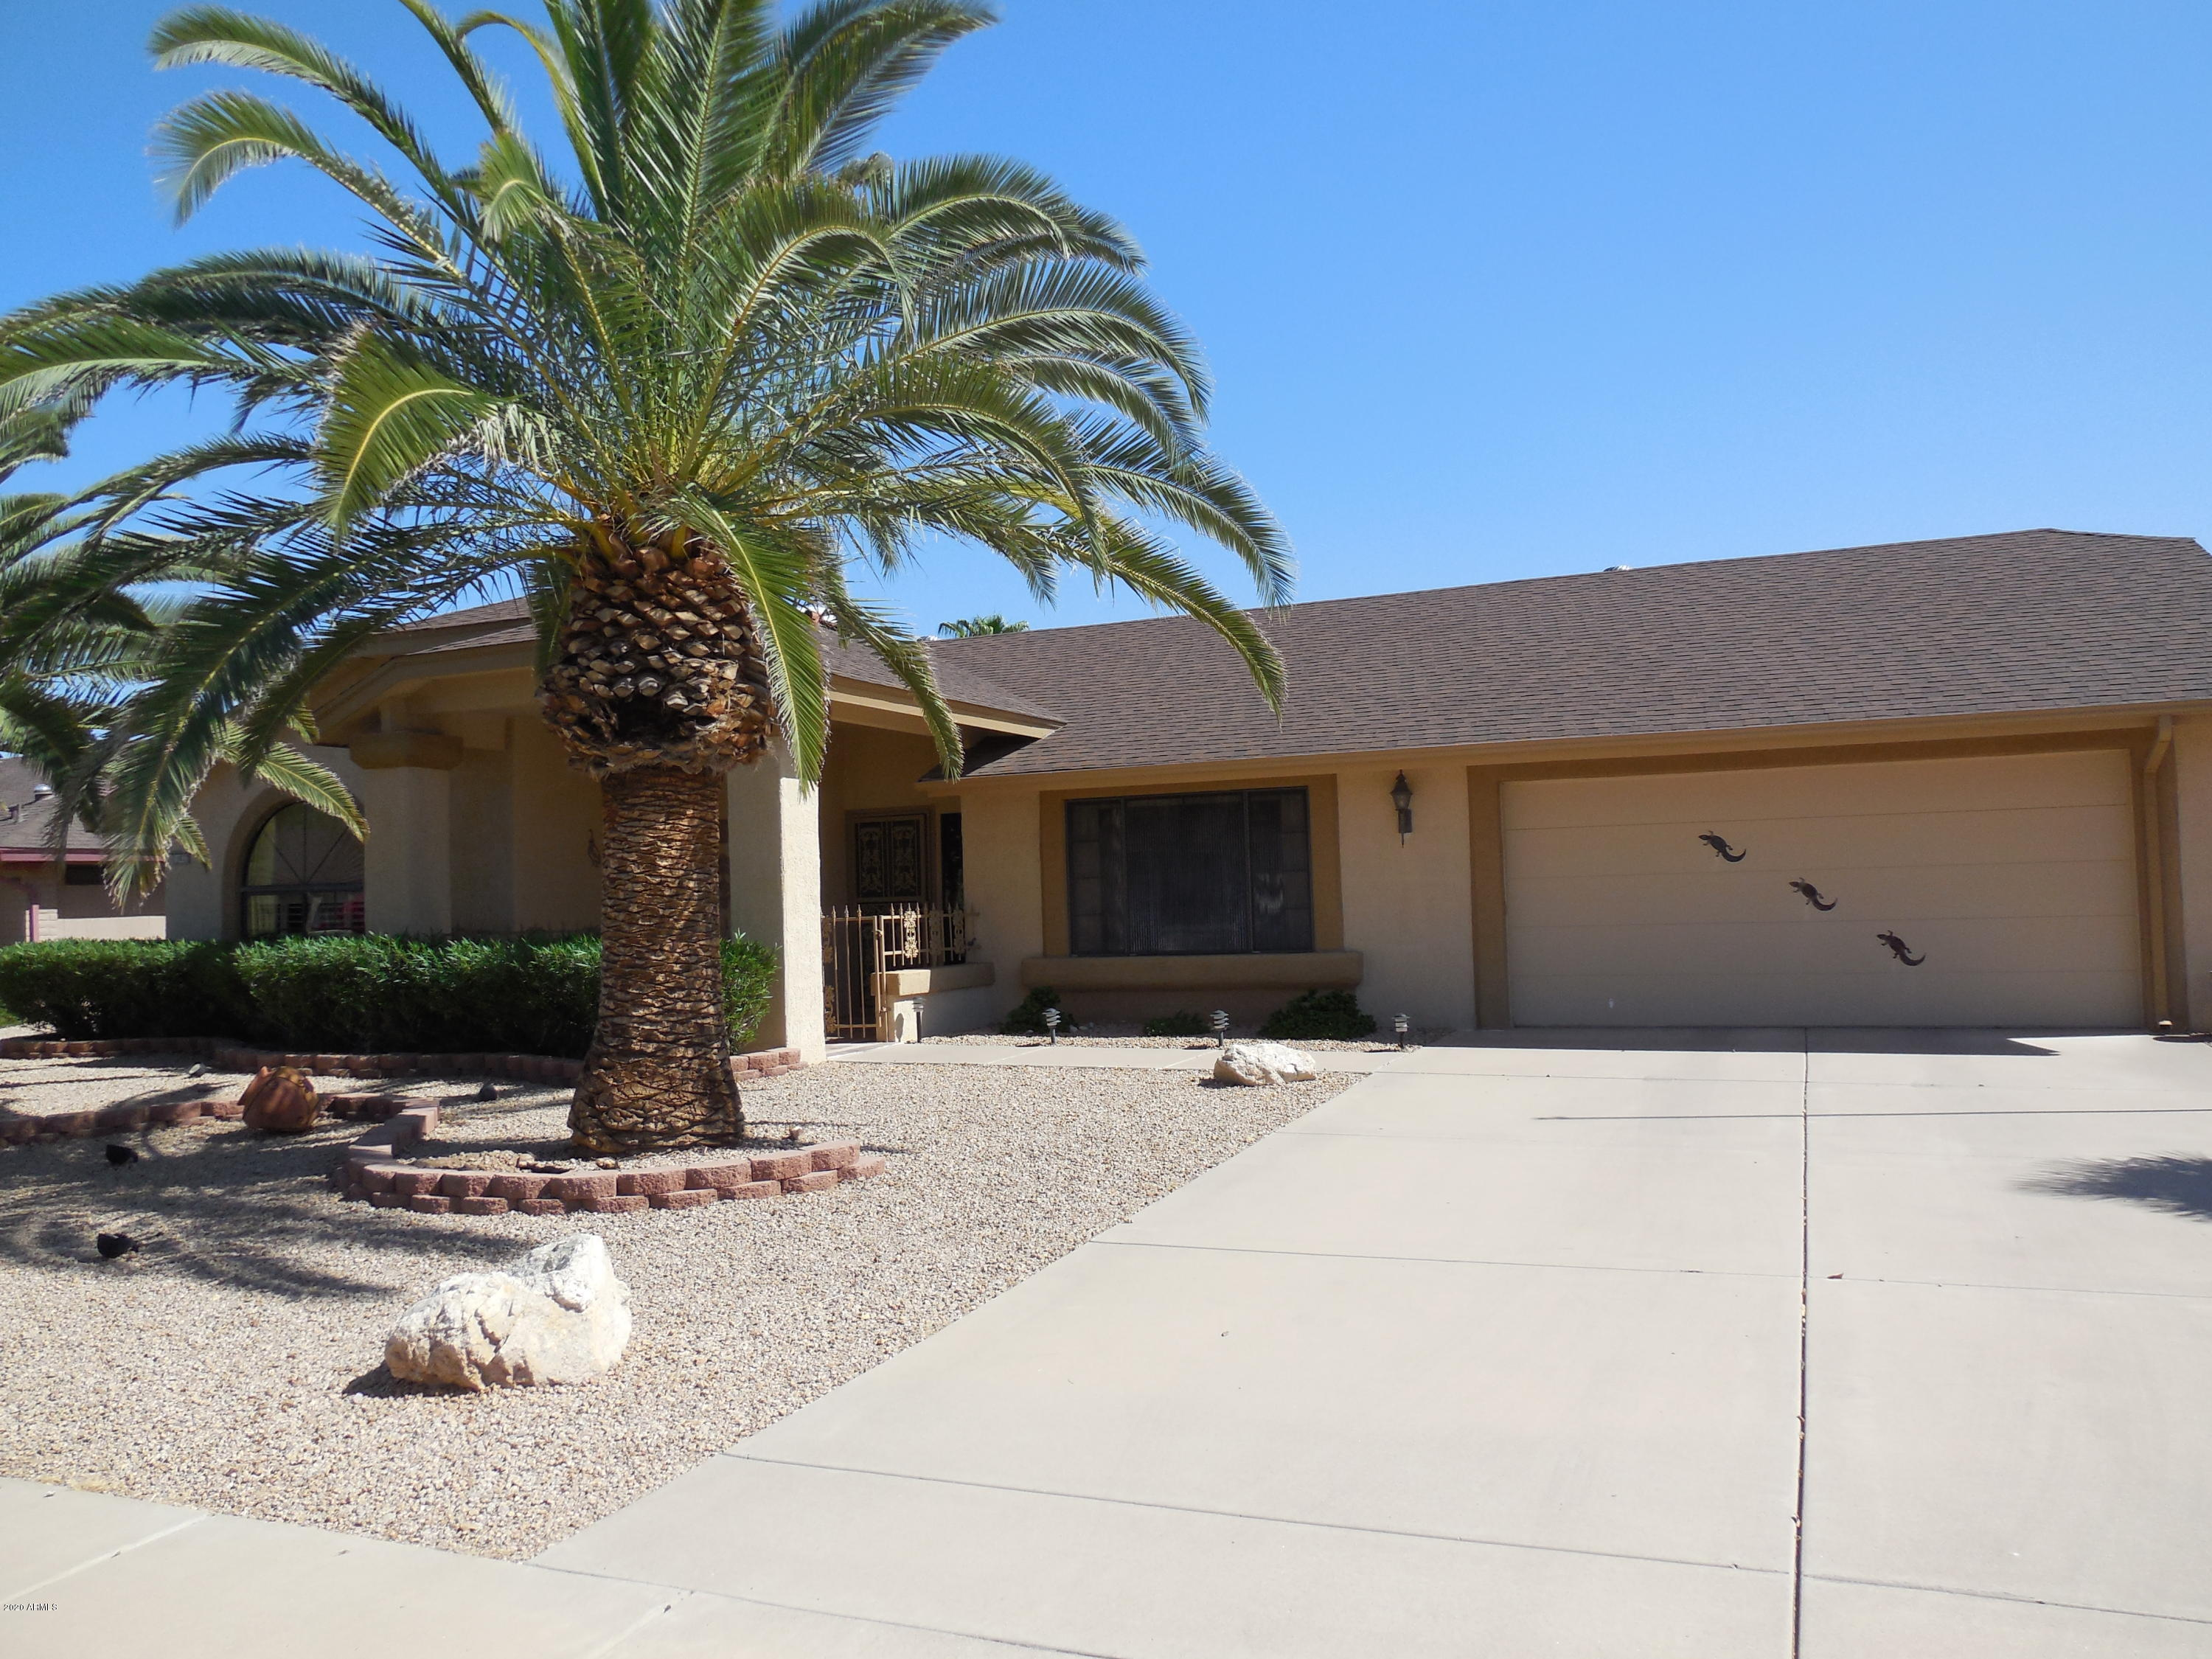 19827 N 147TH Drive, Sun City West, AZ 85375, 2 Bedrooms Bedrooms, ,Residential Lease,For Rent,19827 N 147TH Drive,6140445